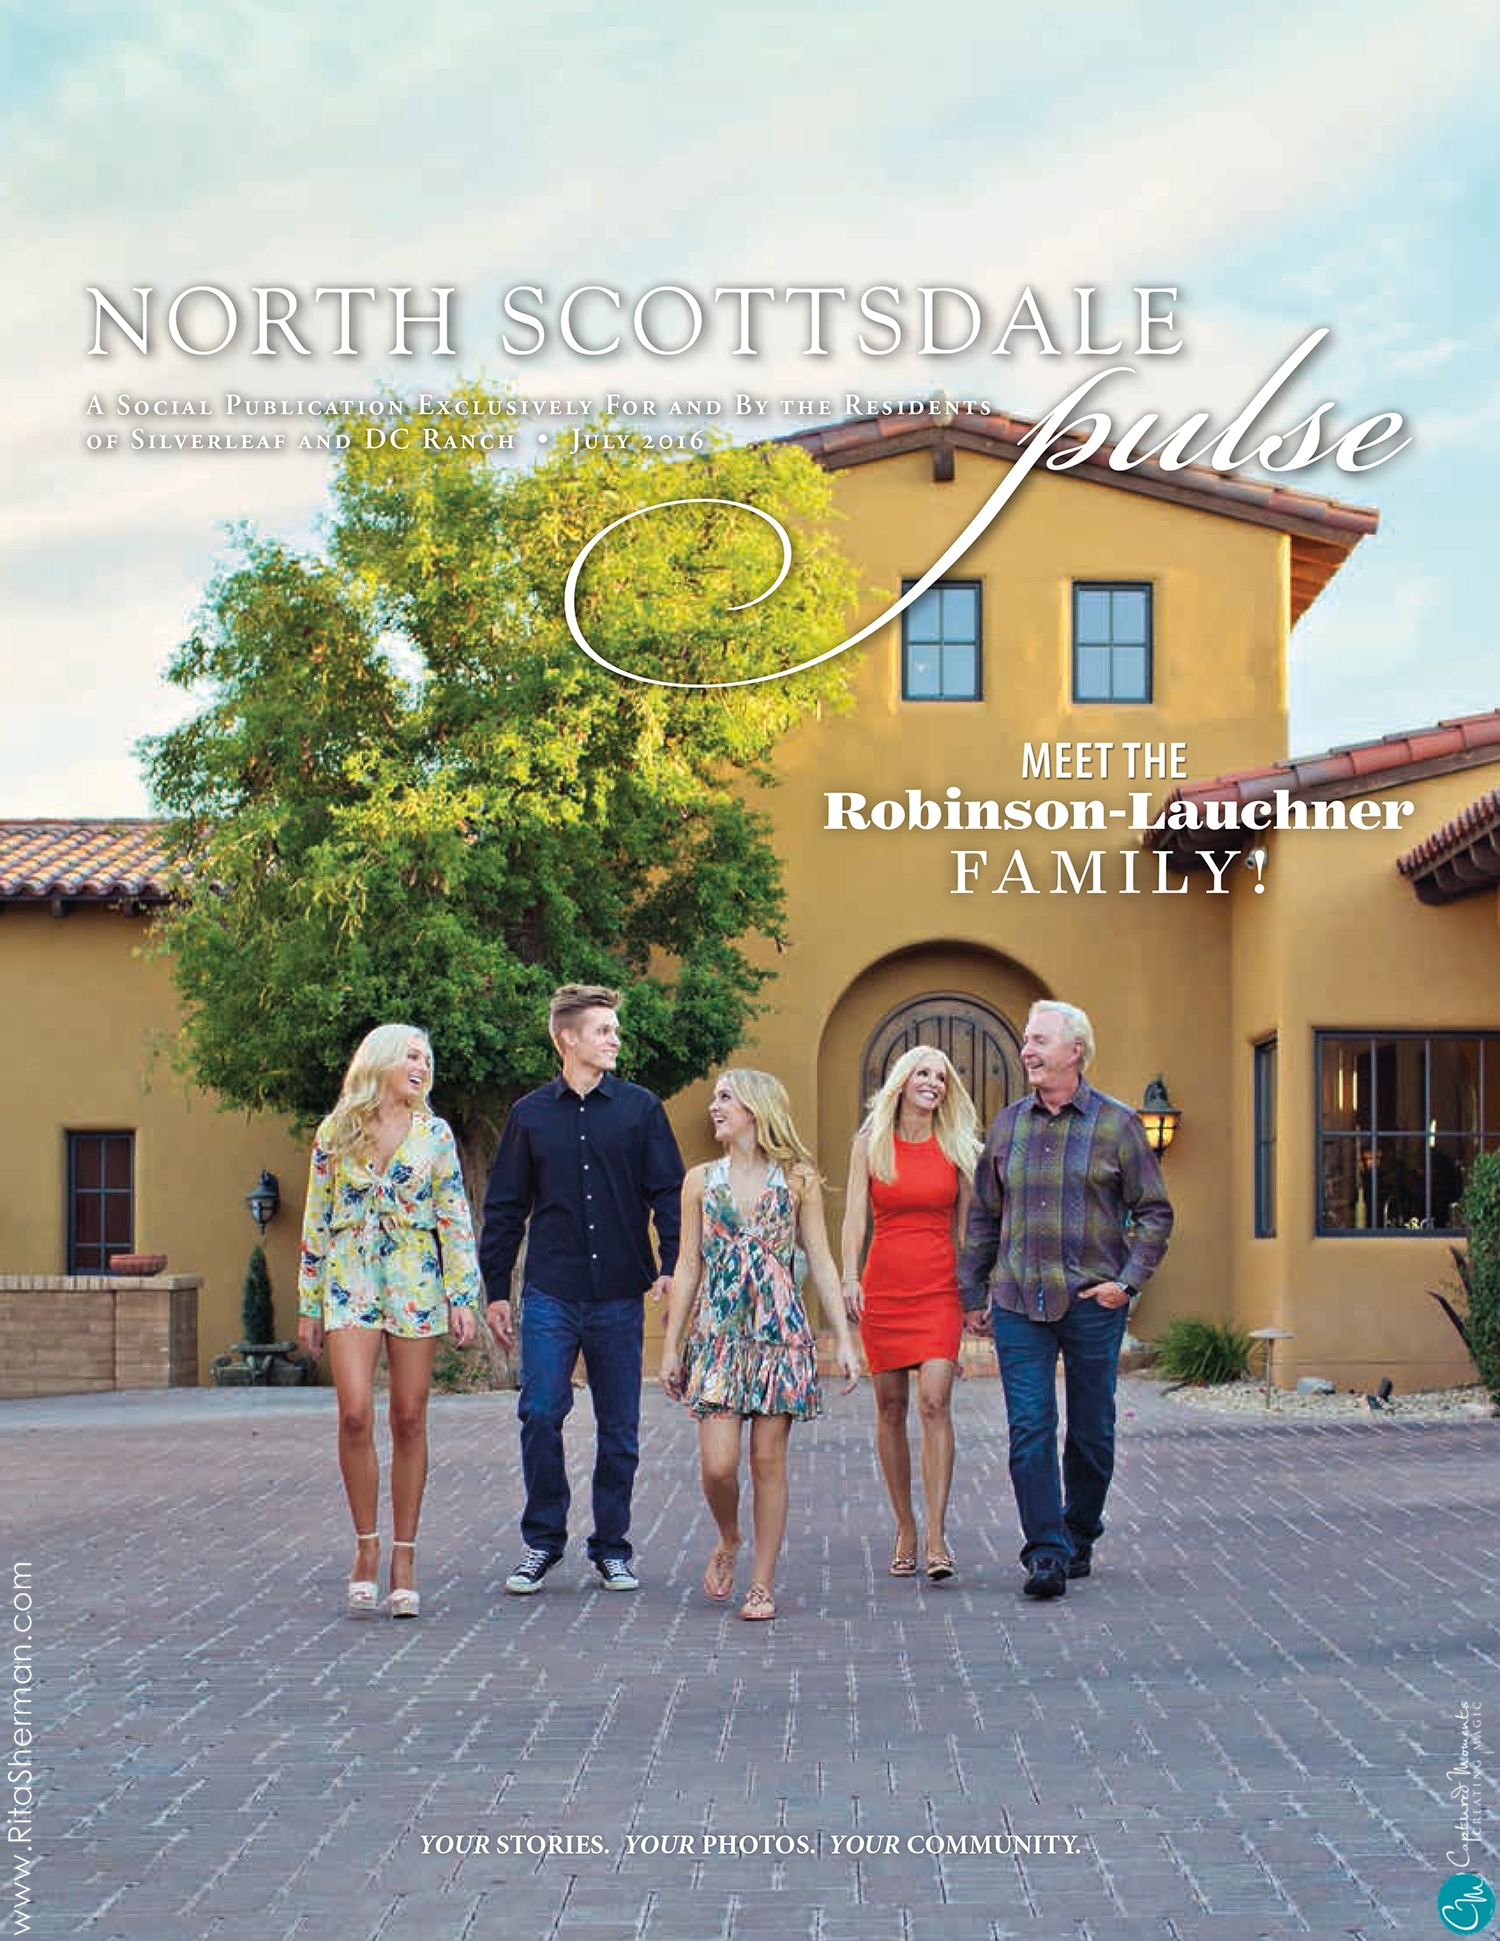 North Scottsdale Pulse Magazine Lauchner Family Captured Moments by Rita and Compay